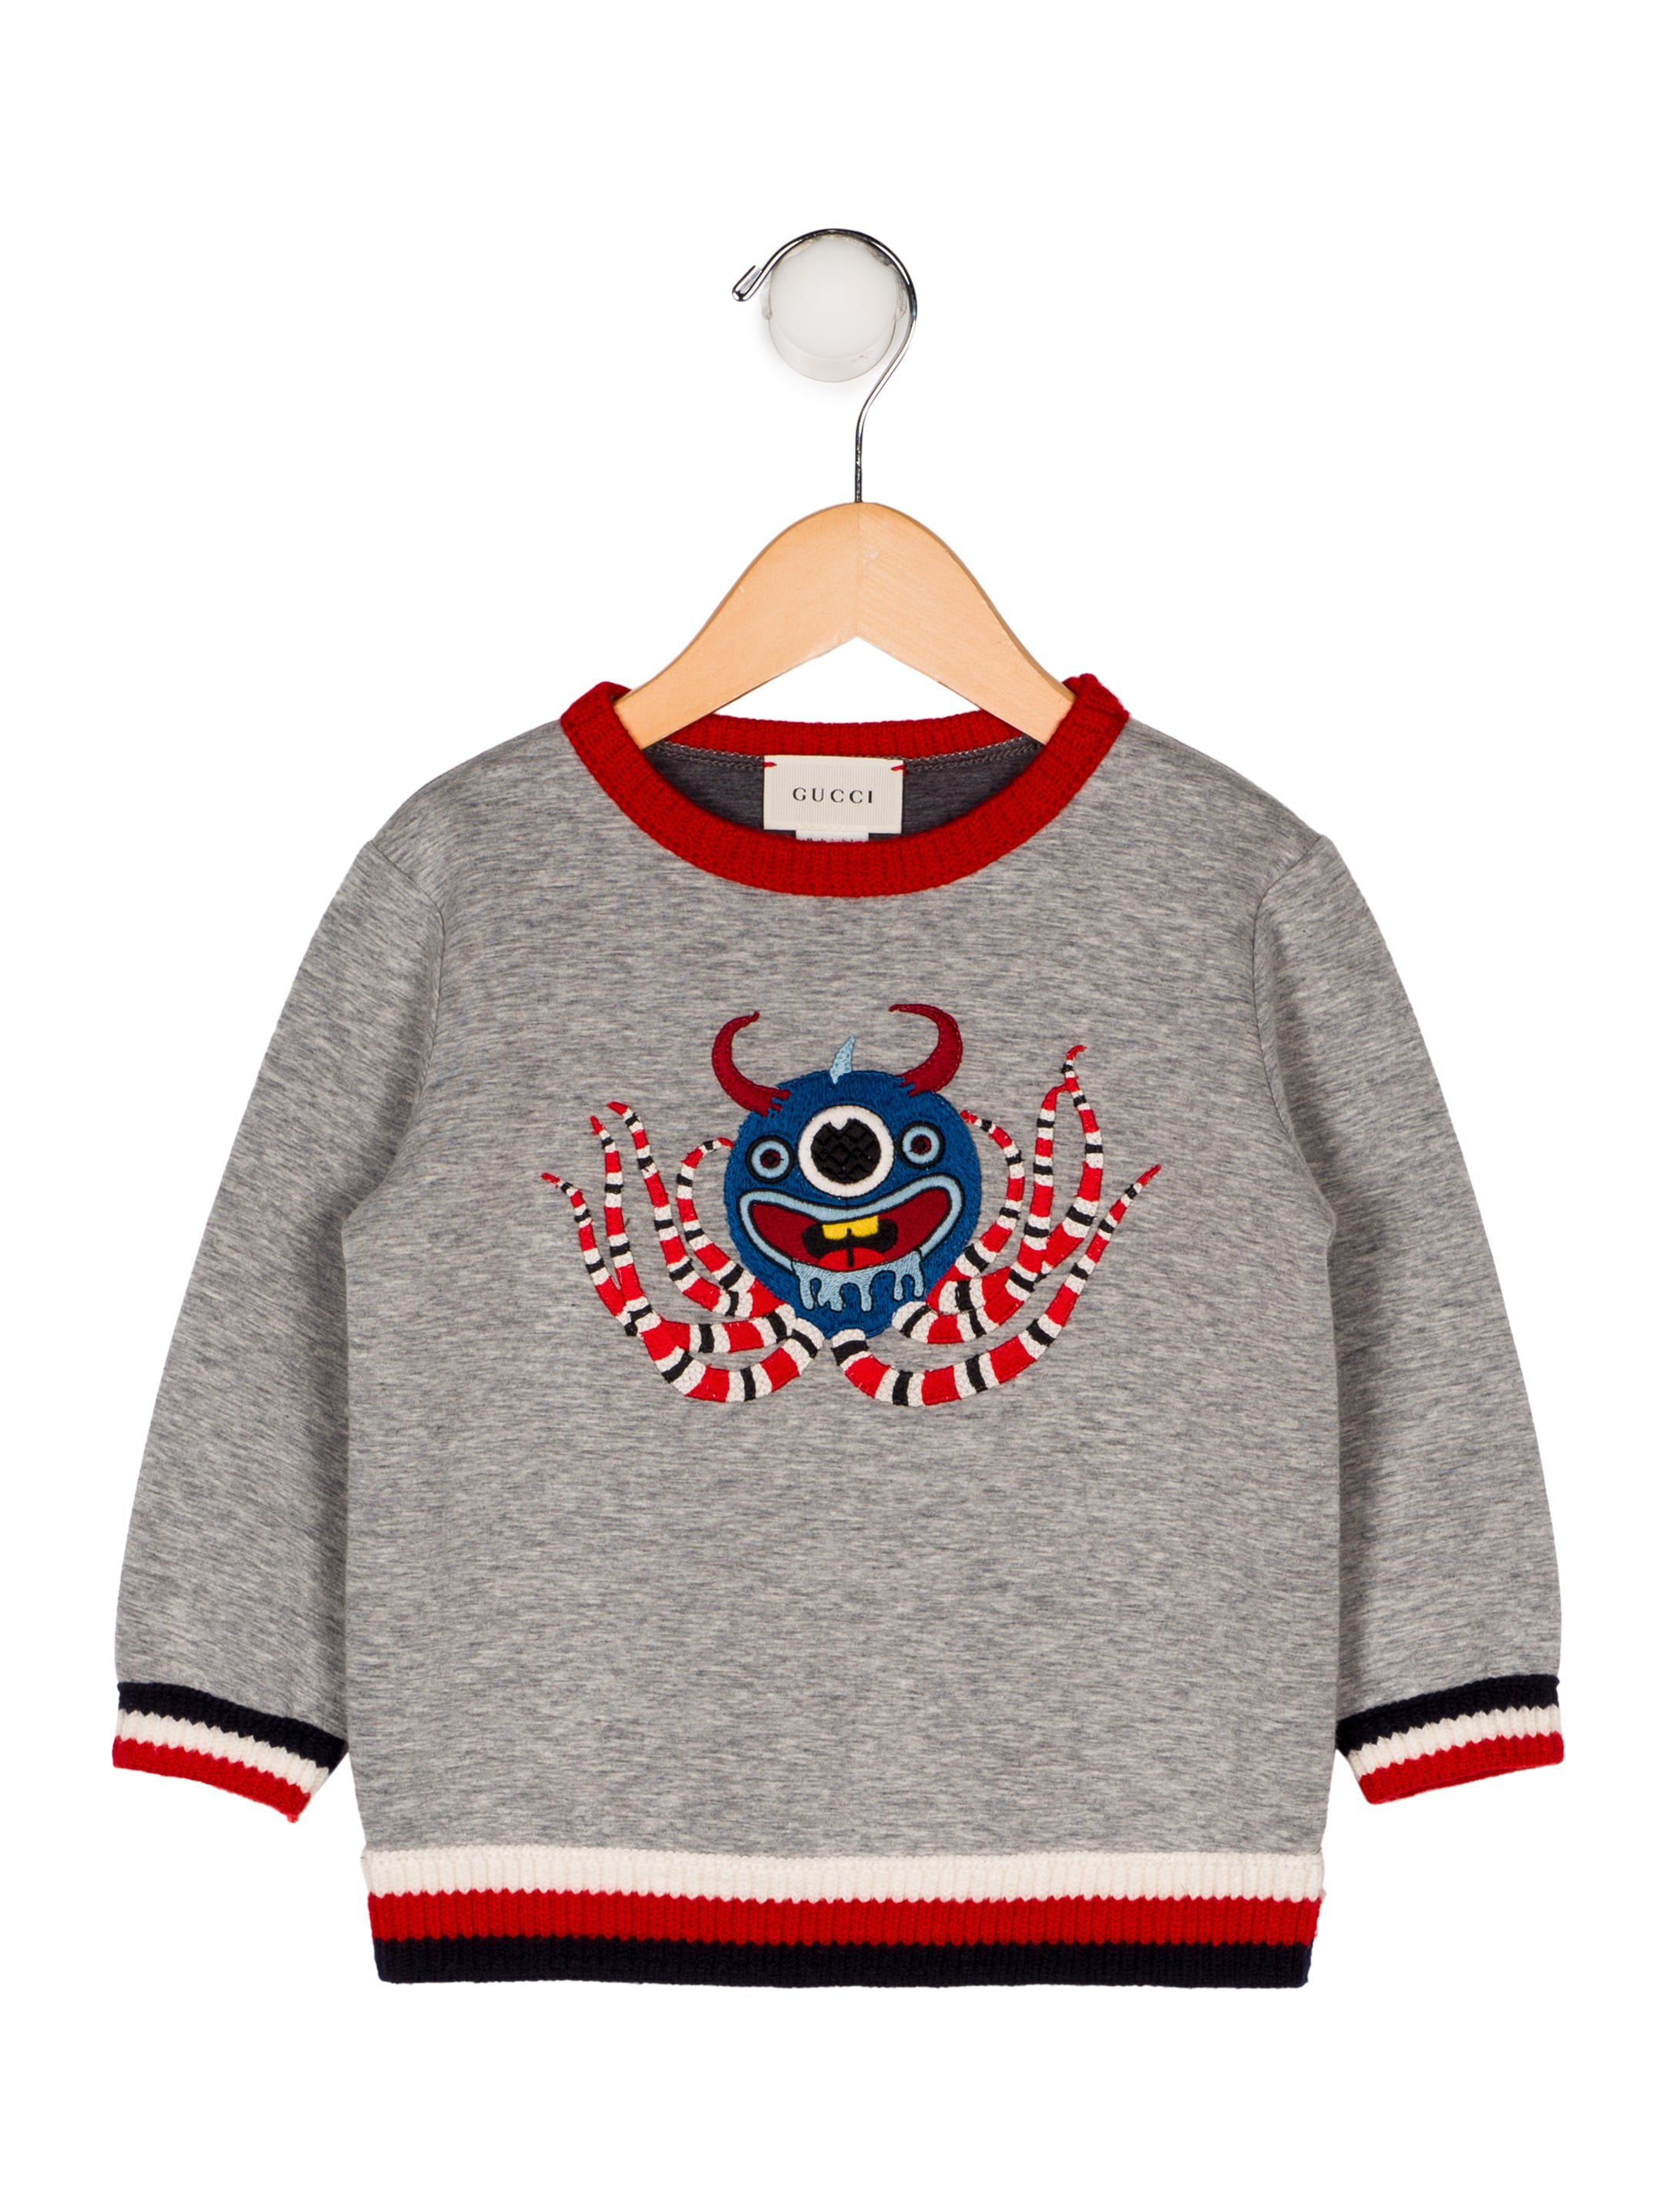 ec124c7f9 Gucci Boys' Monster Sweater - Boys - GUC262309 | The RealReal